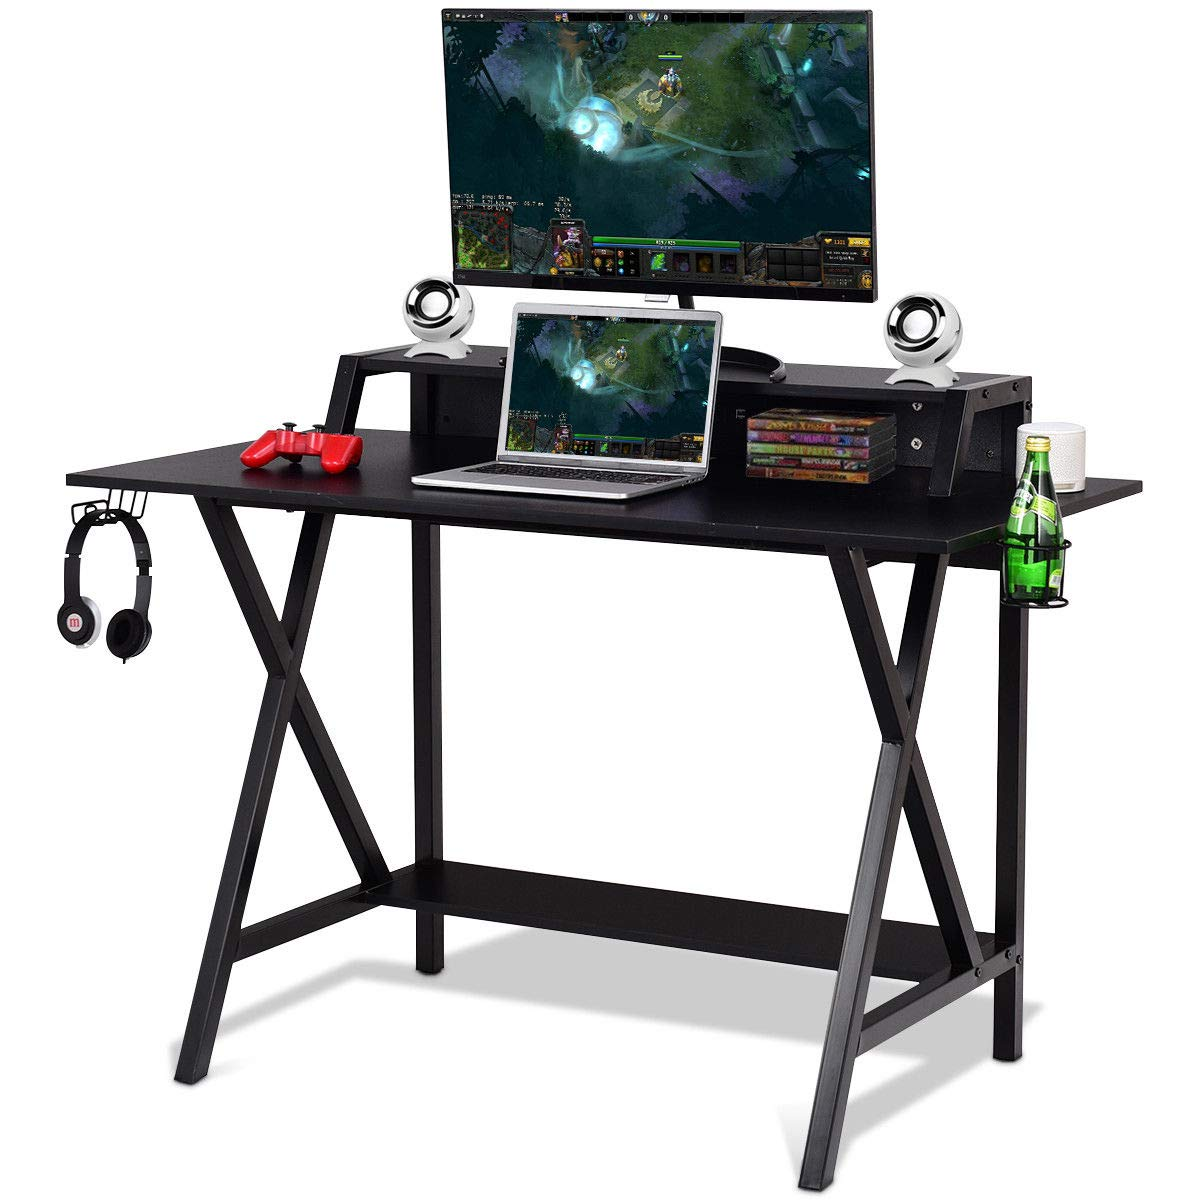 Tangkula Gaming Desk, Gaming Computer Desk, Gamers Computer Desk, Gaming Workstation with Cup & Headphone Holder, Built-in Wire-Management, Writing Desk for Home Or Office